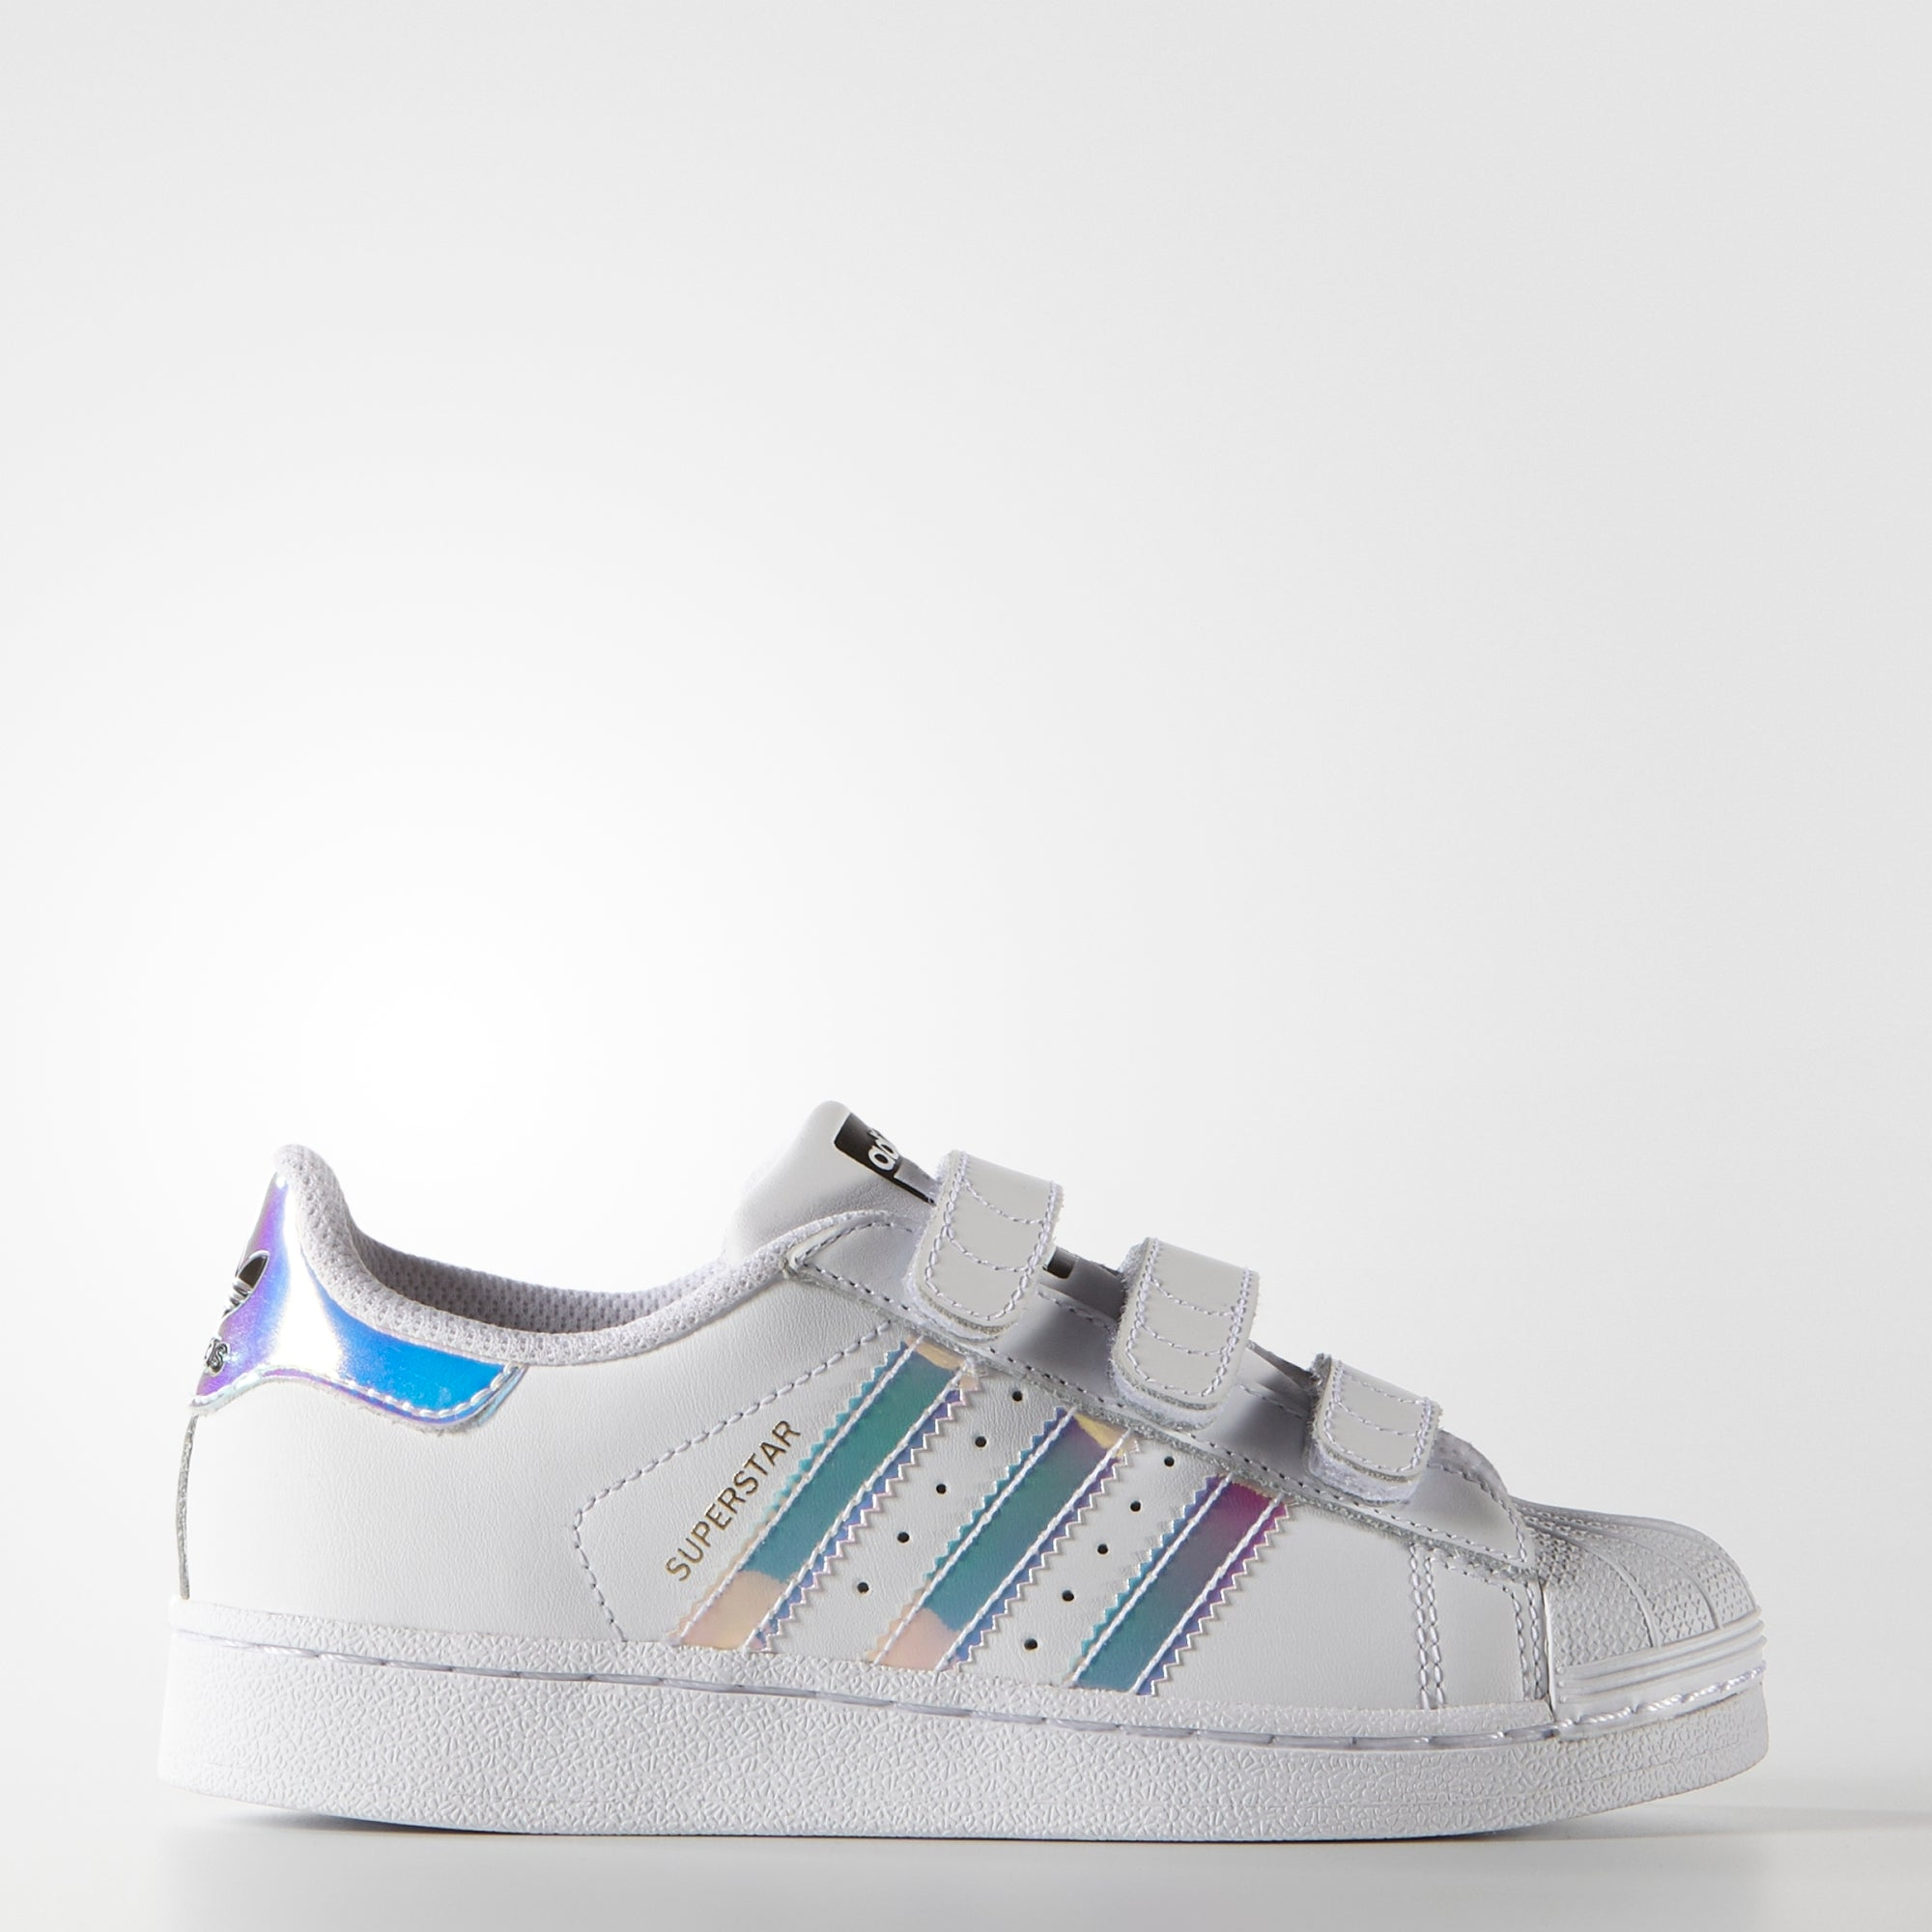 9aa724802e8b Kid s adidas Originals Superstar Velcro Shoes White Hologram Iridescent